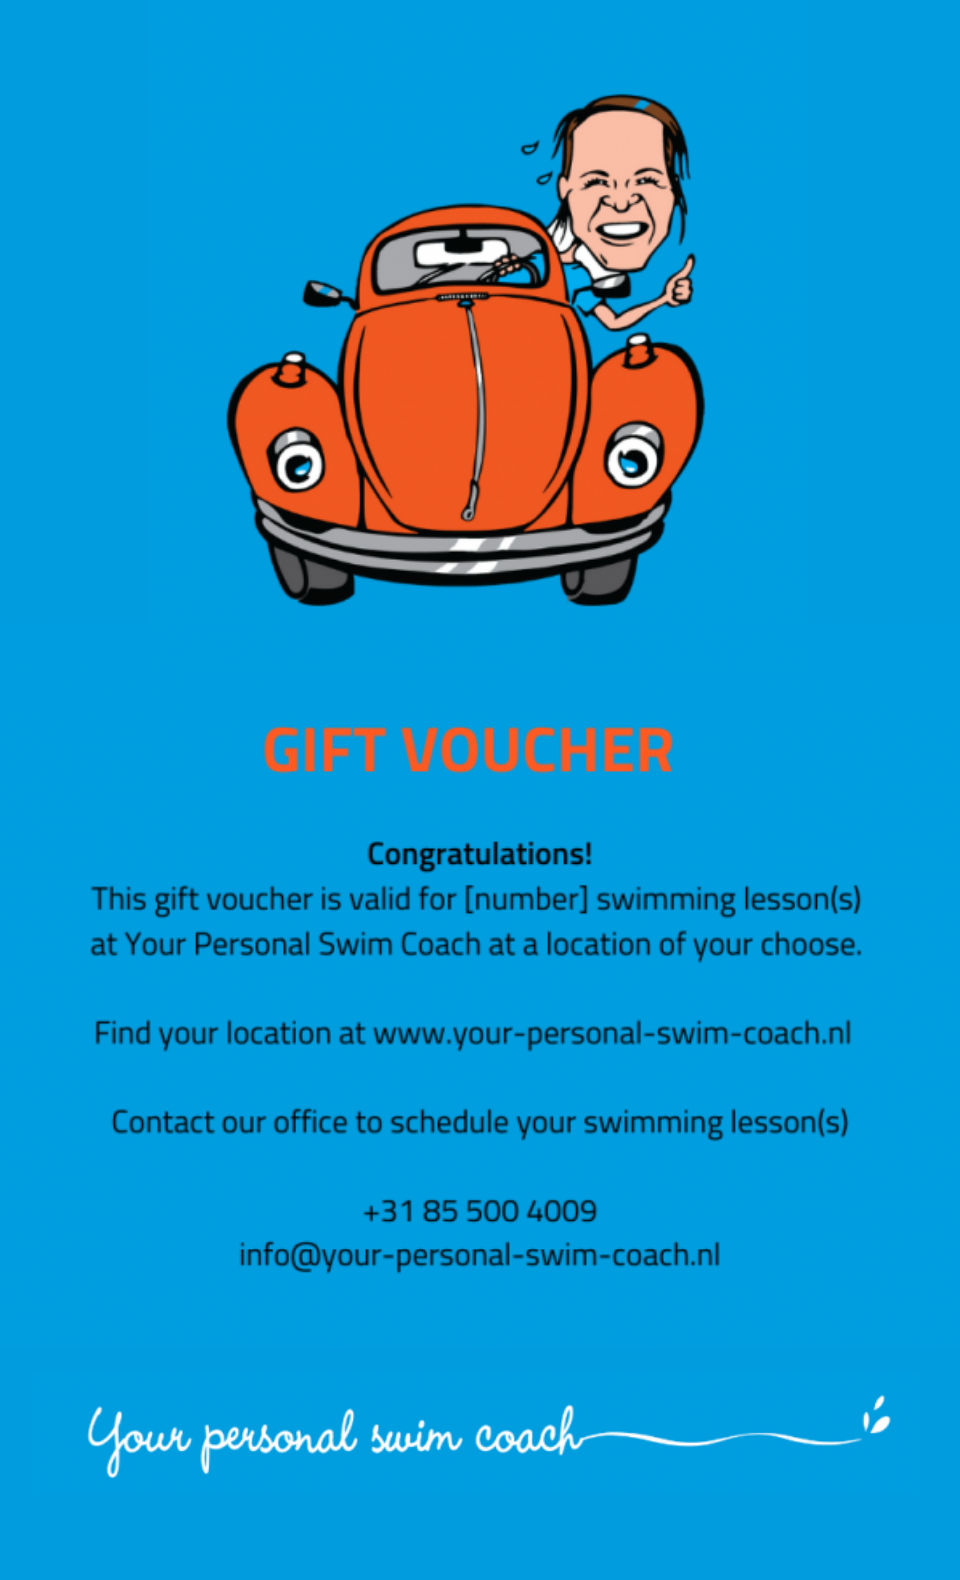 Adult swimming lessons gift voucher